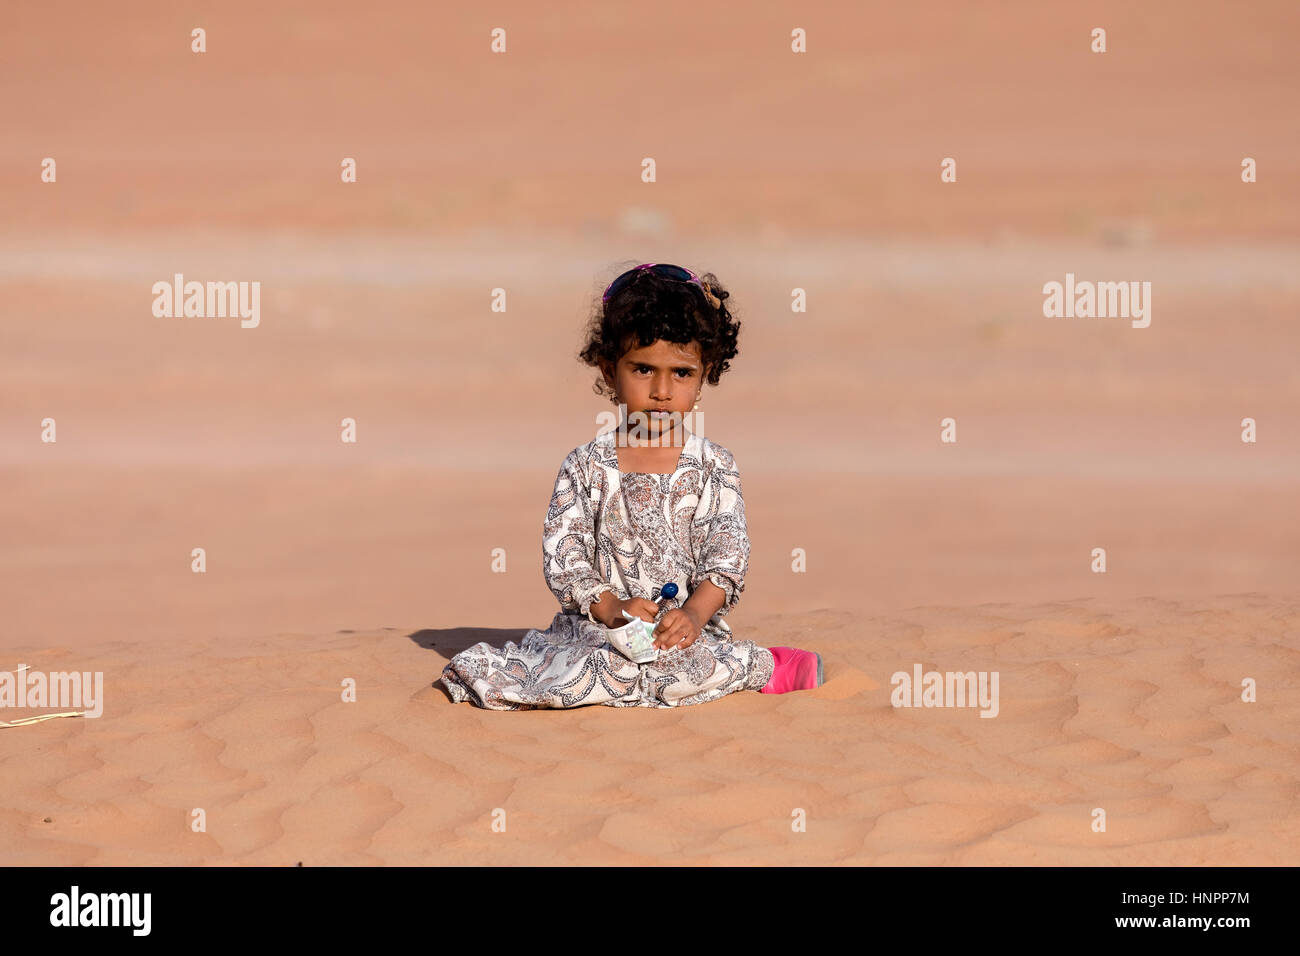 Bedouin girl in Wahiba Sands, Oman, Middle East, Asia - Stock Image